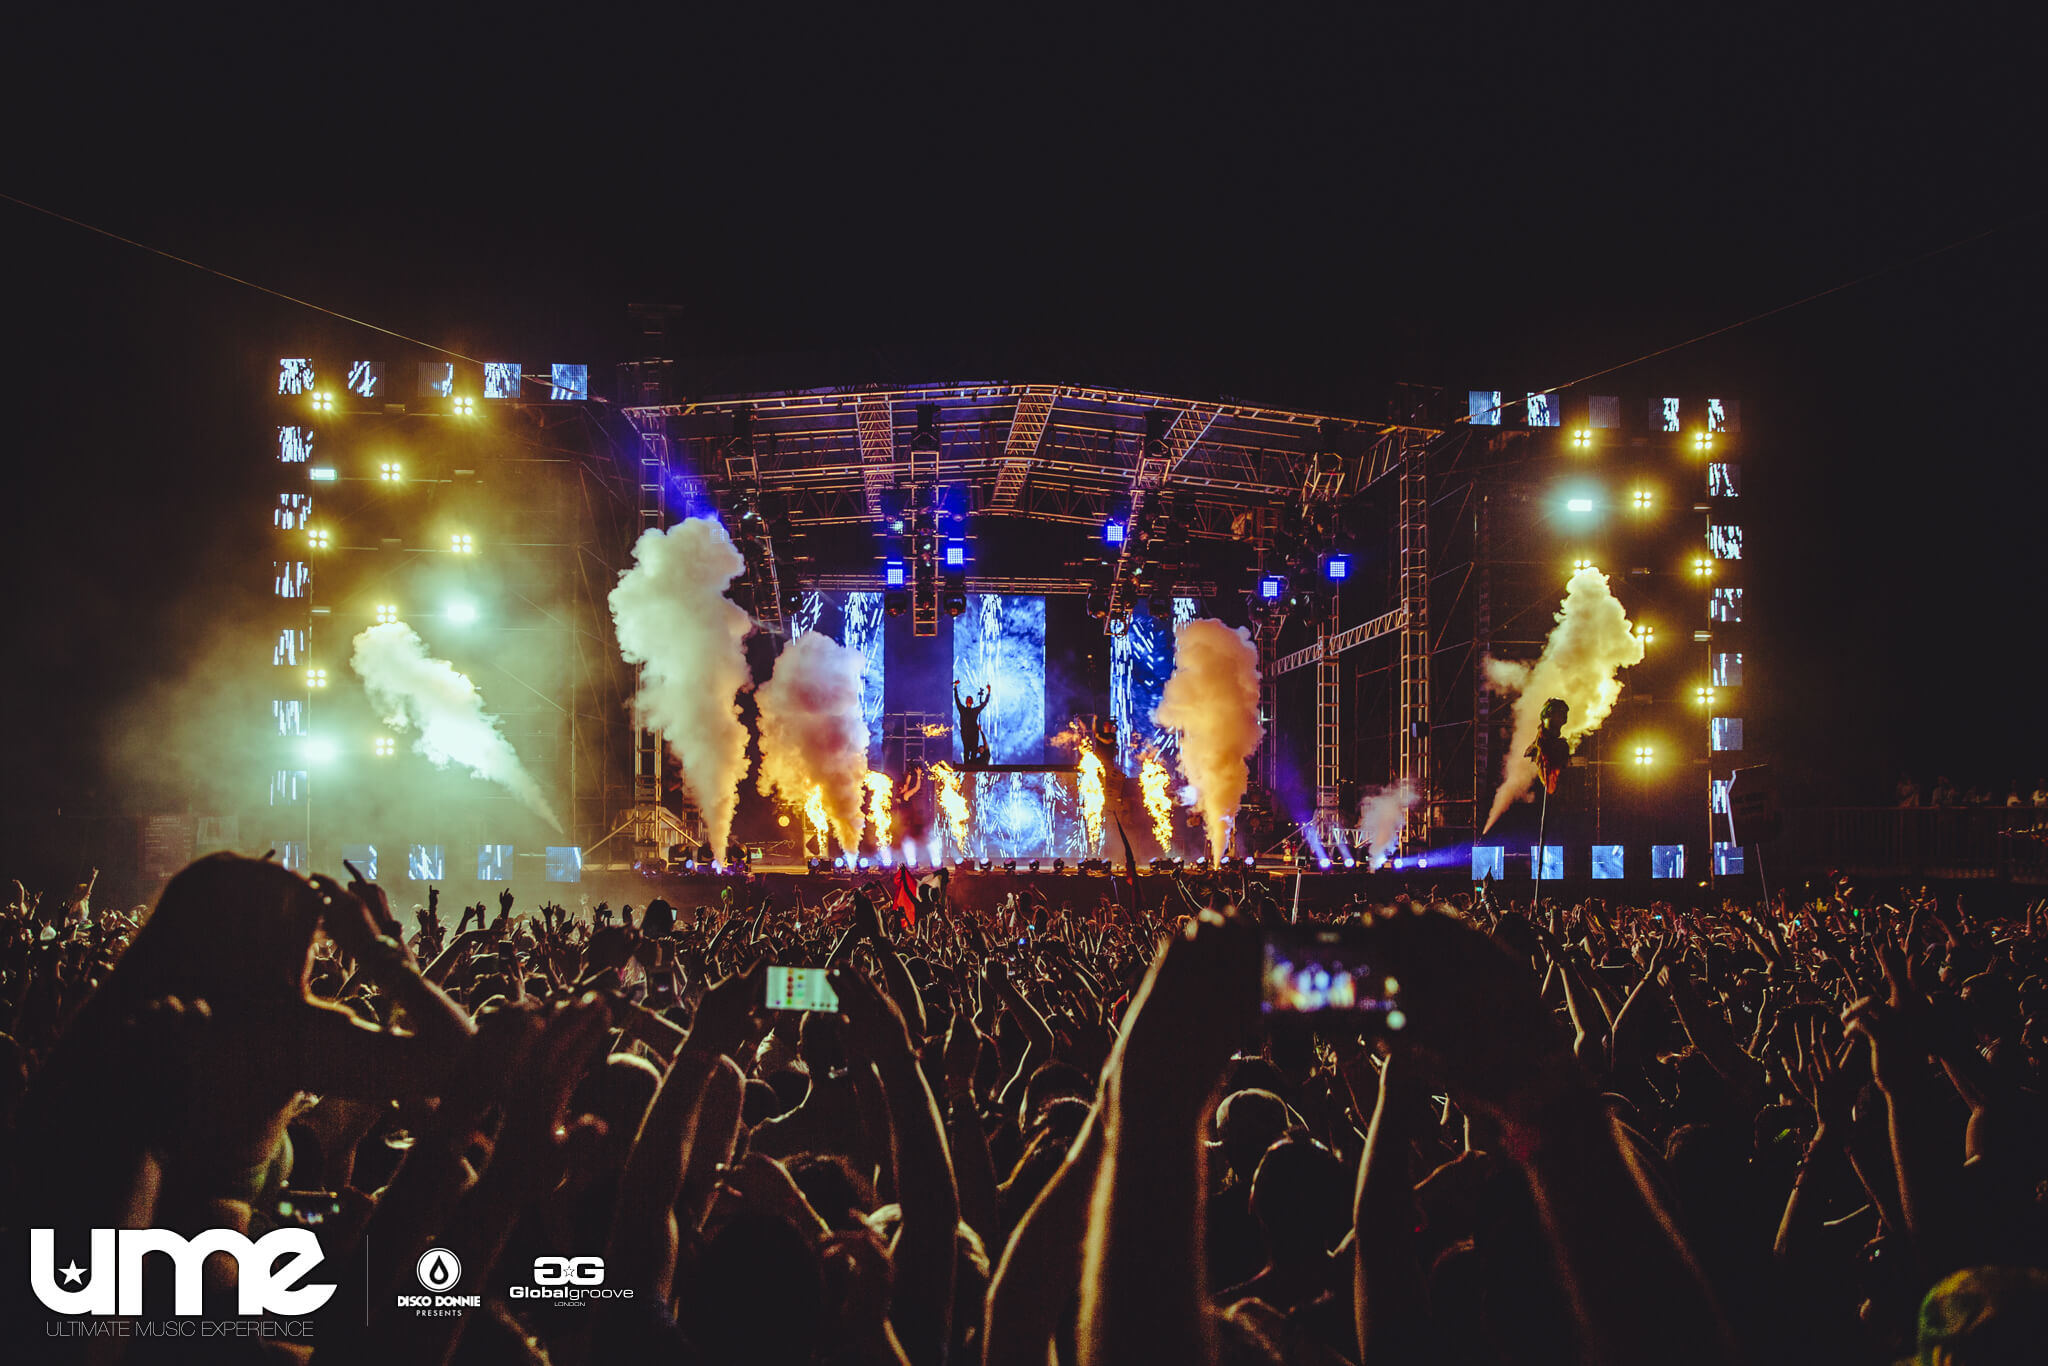 stage production at ume 2016